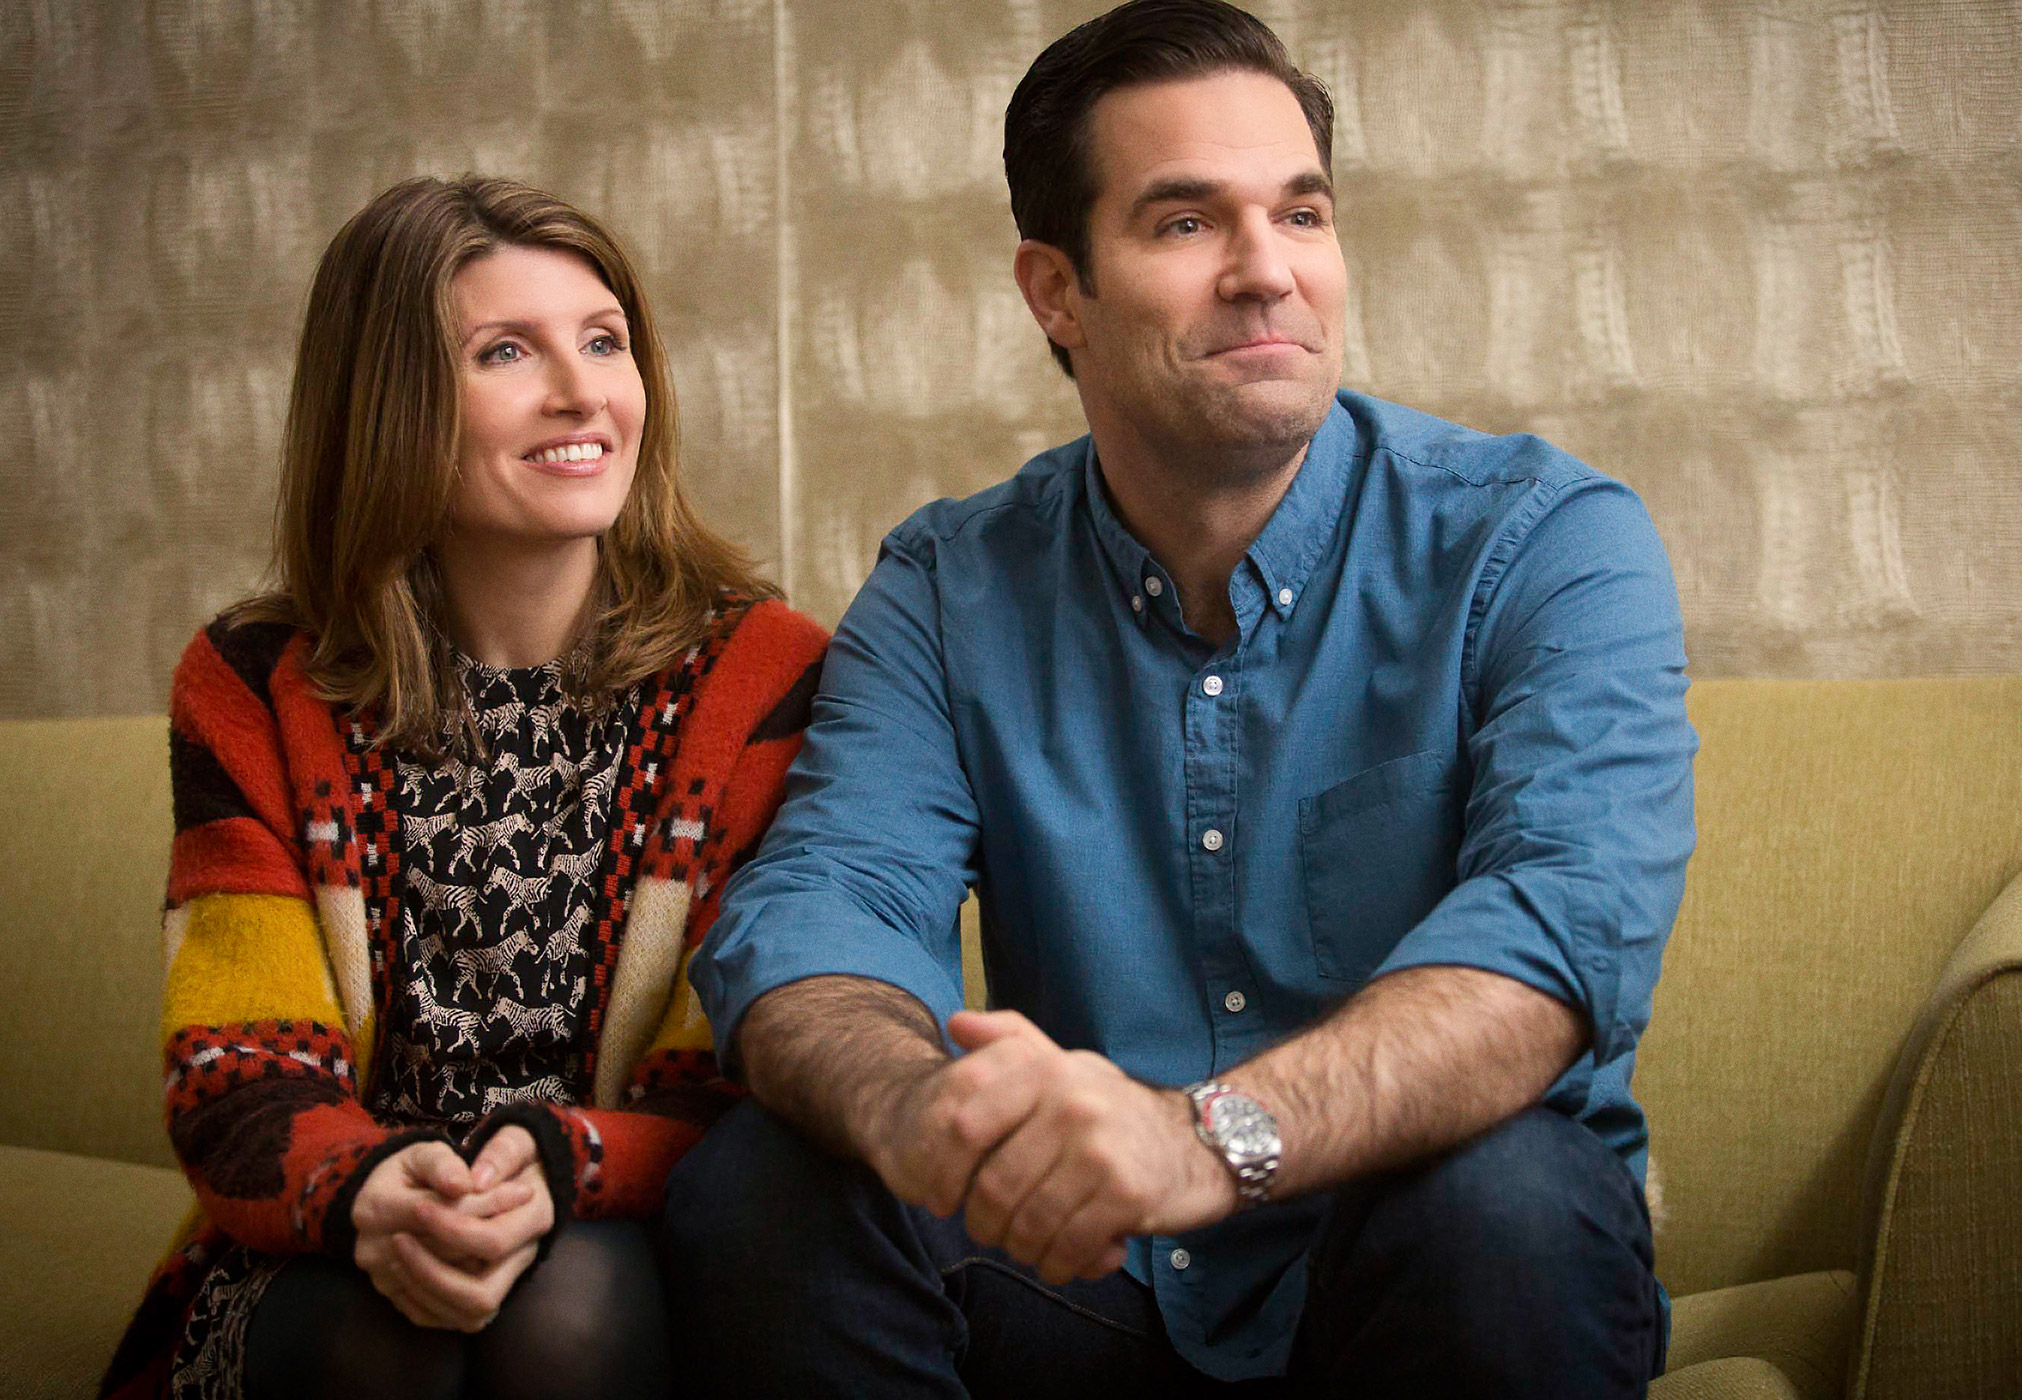 Rob Delaney and Sharon Horgan star in Catastrophe